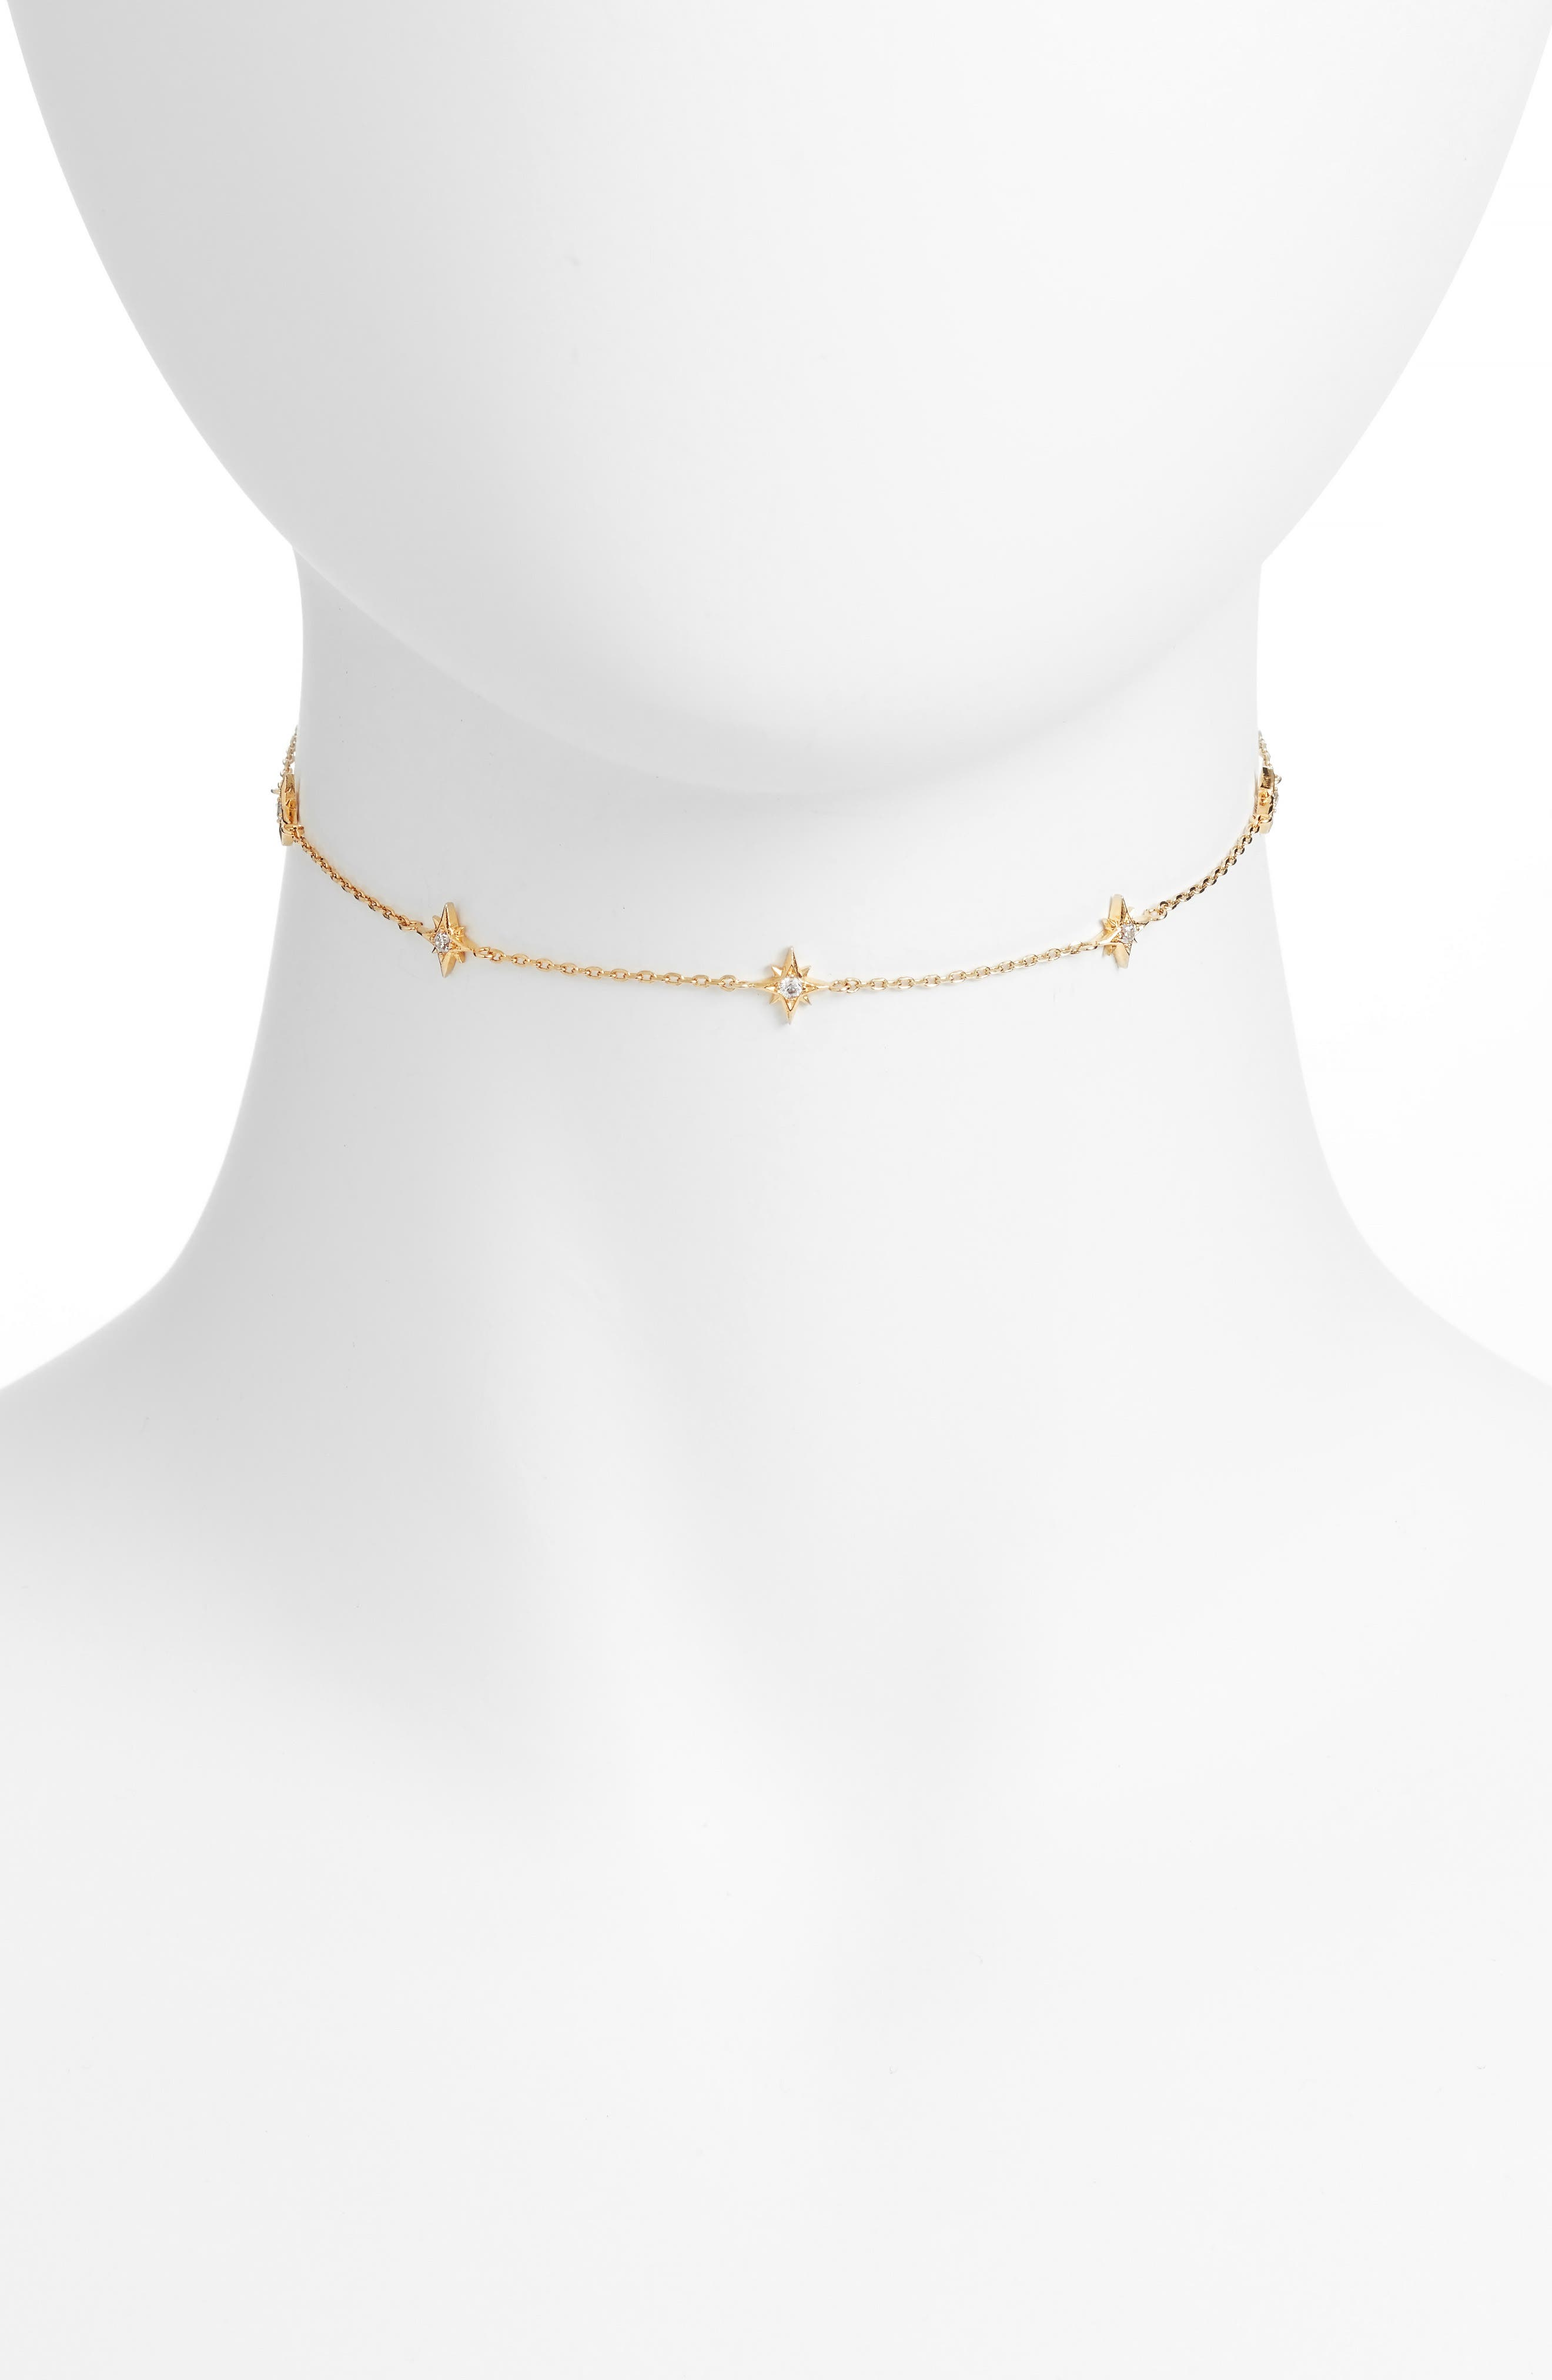 Mona Star Choker Necklace,                         Main,                         color, Gold